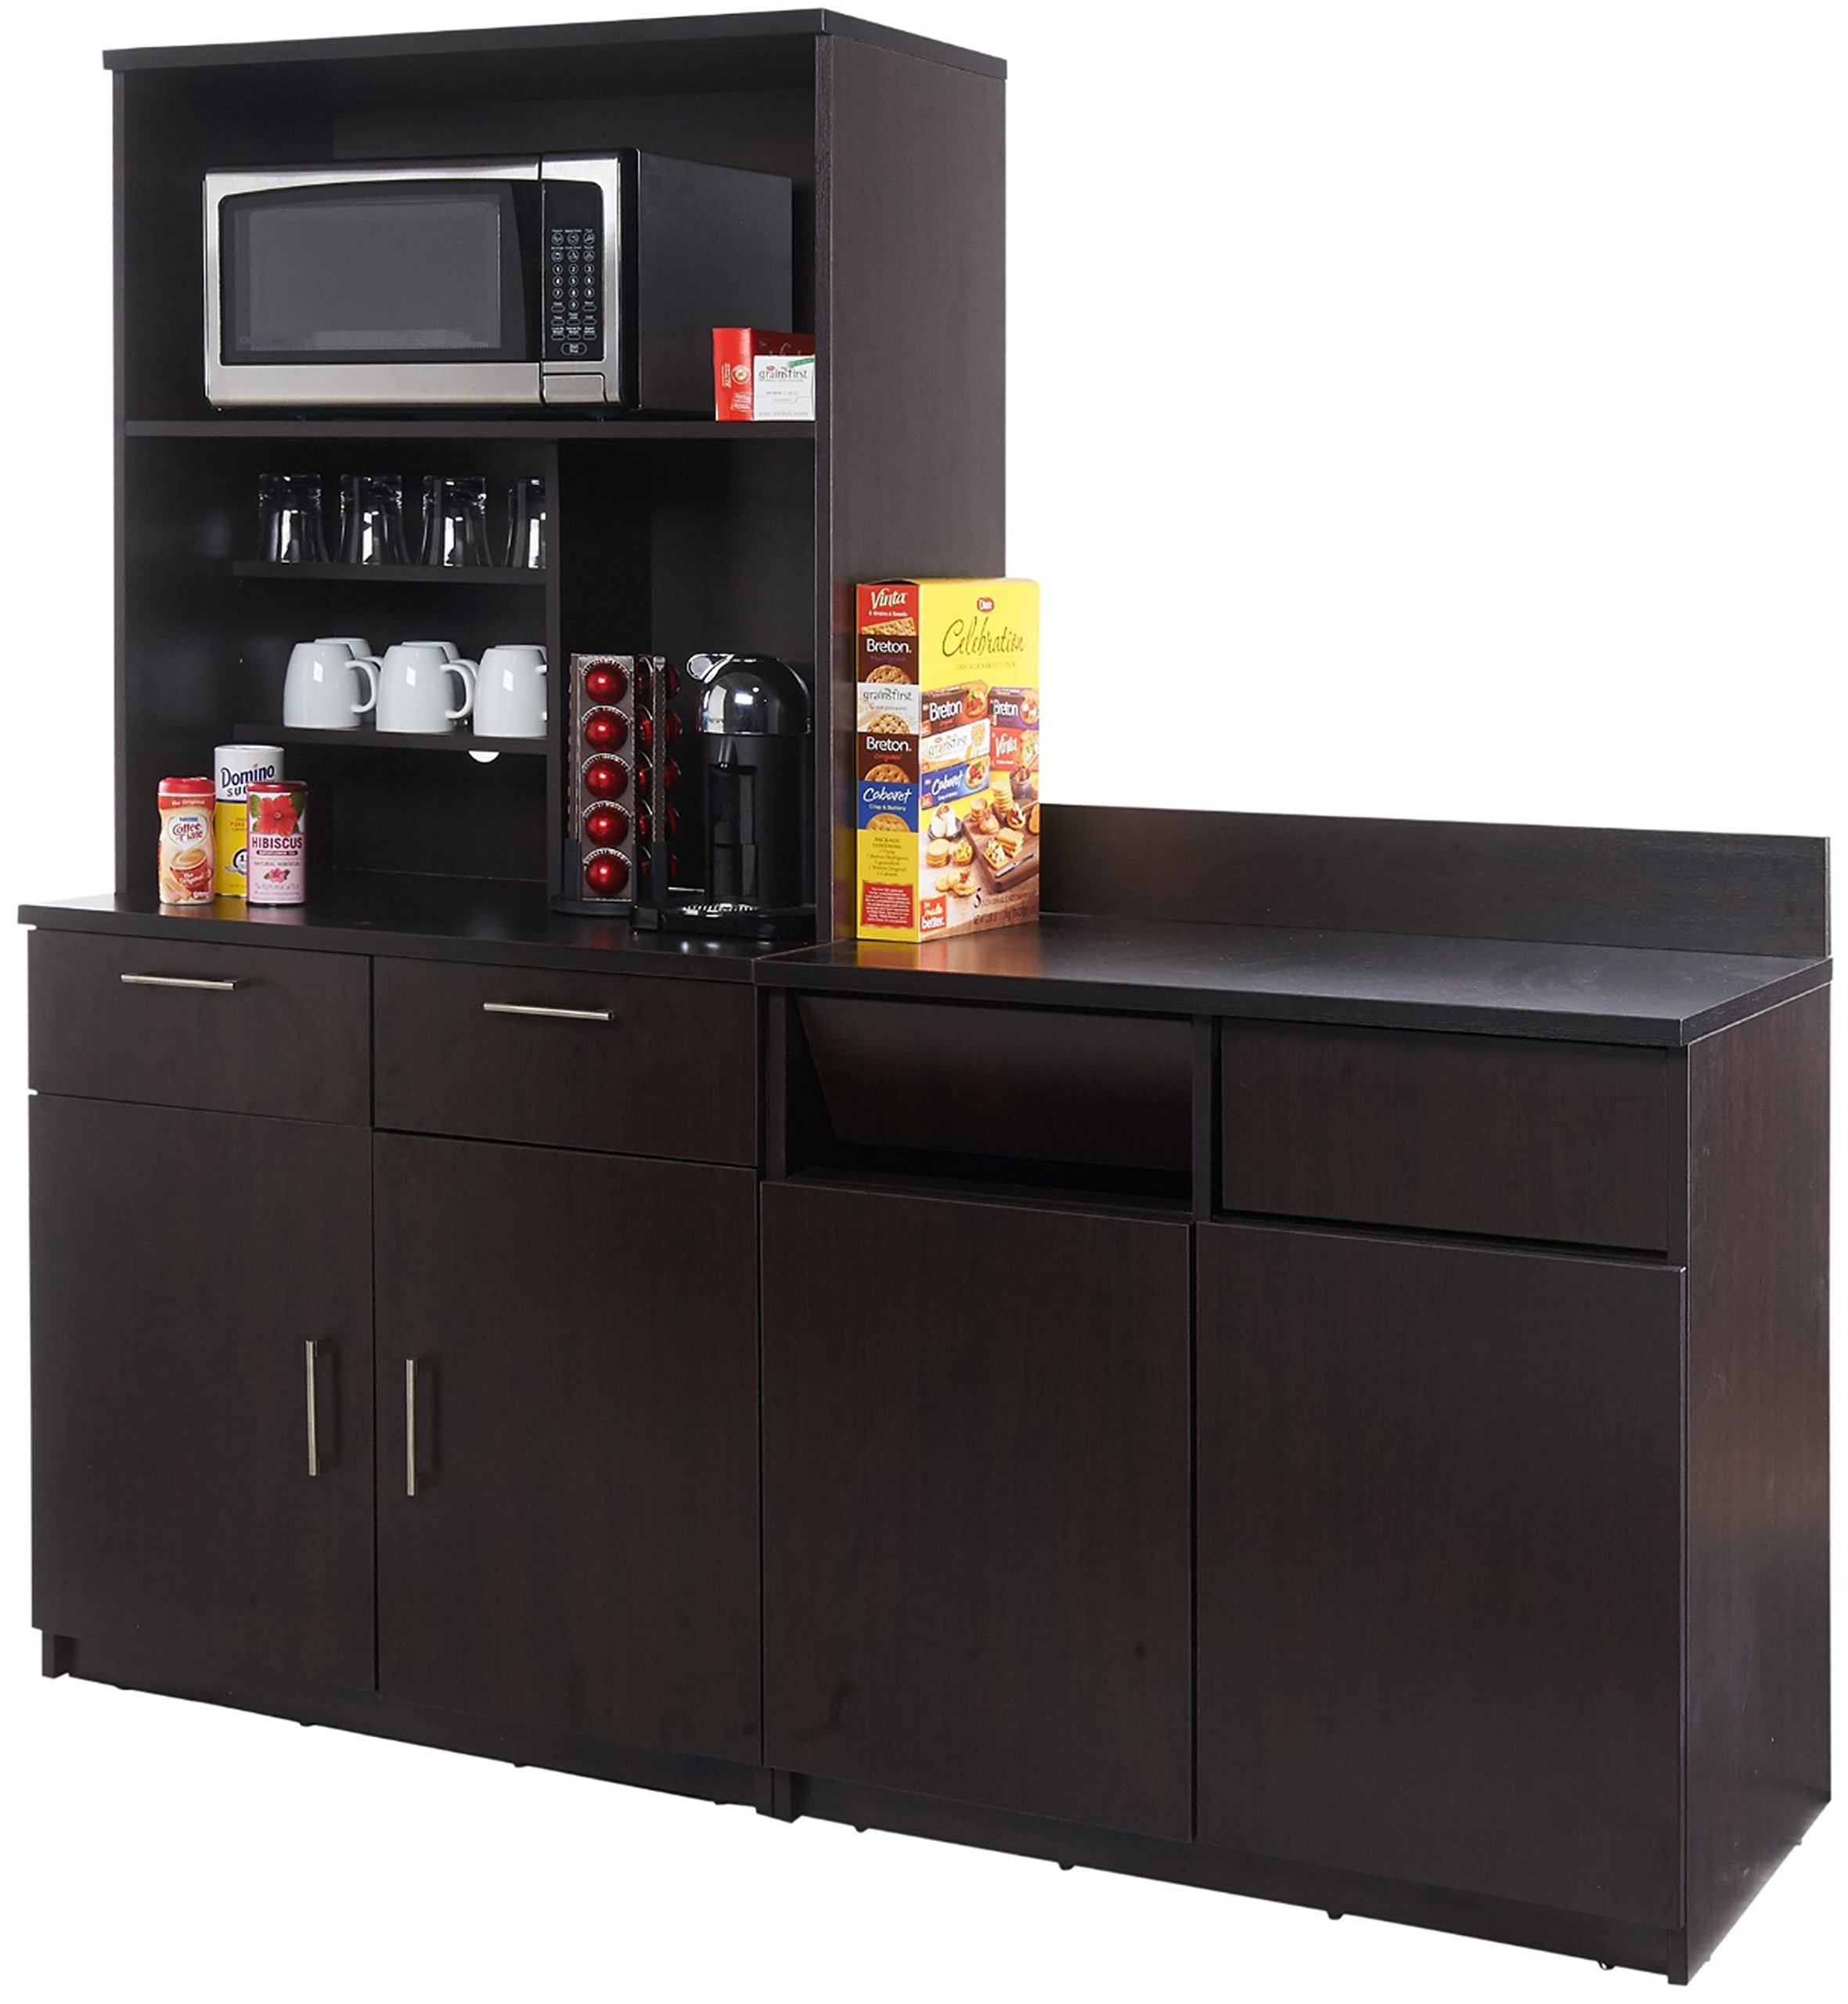 Breaktime 3PC Group Model 2126 Break Room Lunch Combo ''Ready-To-Install/Ready-To-Use'', Espresso